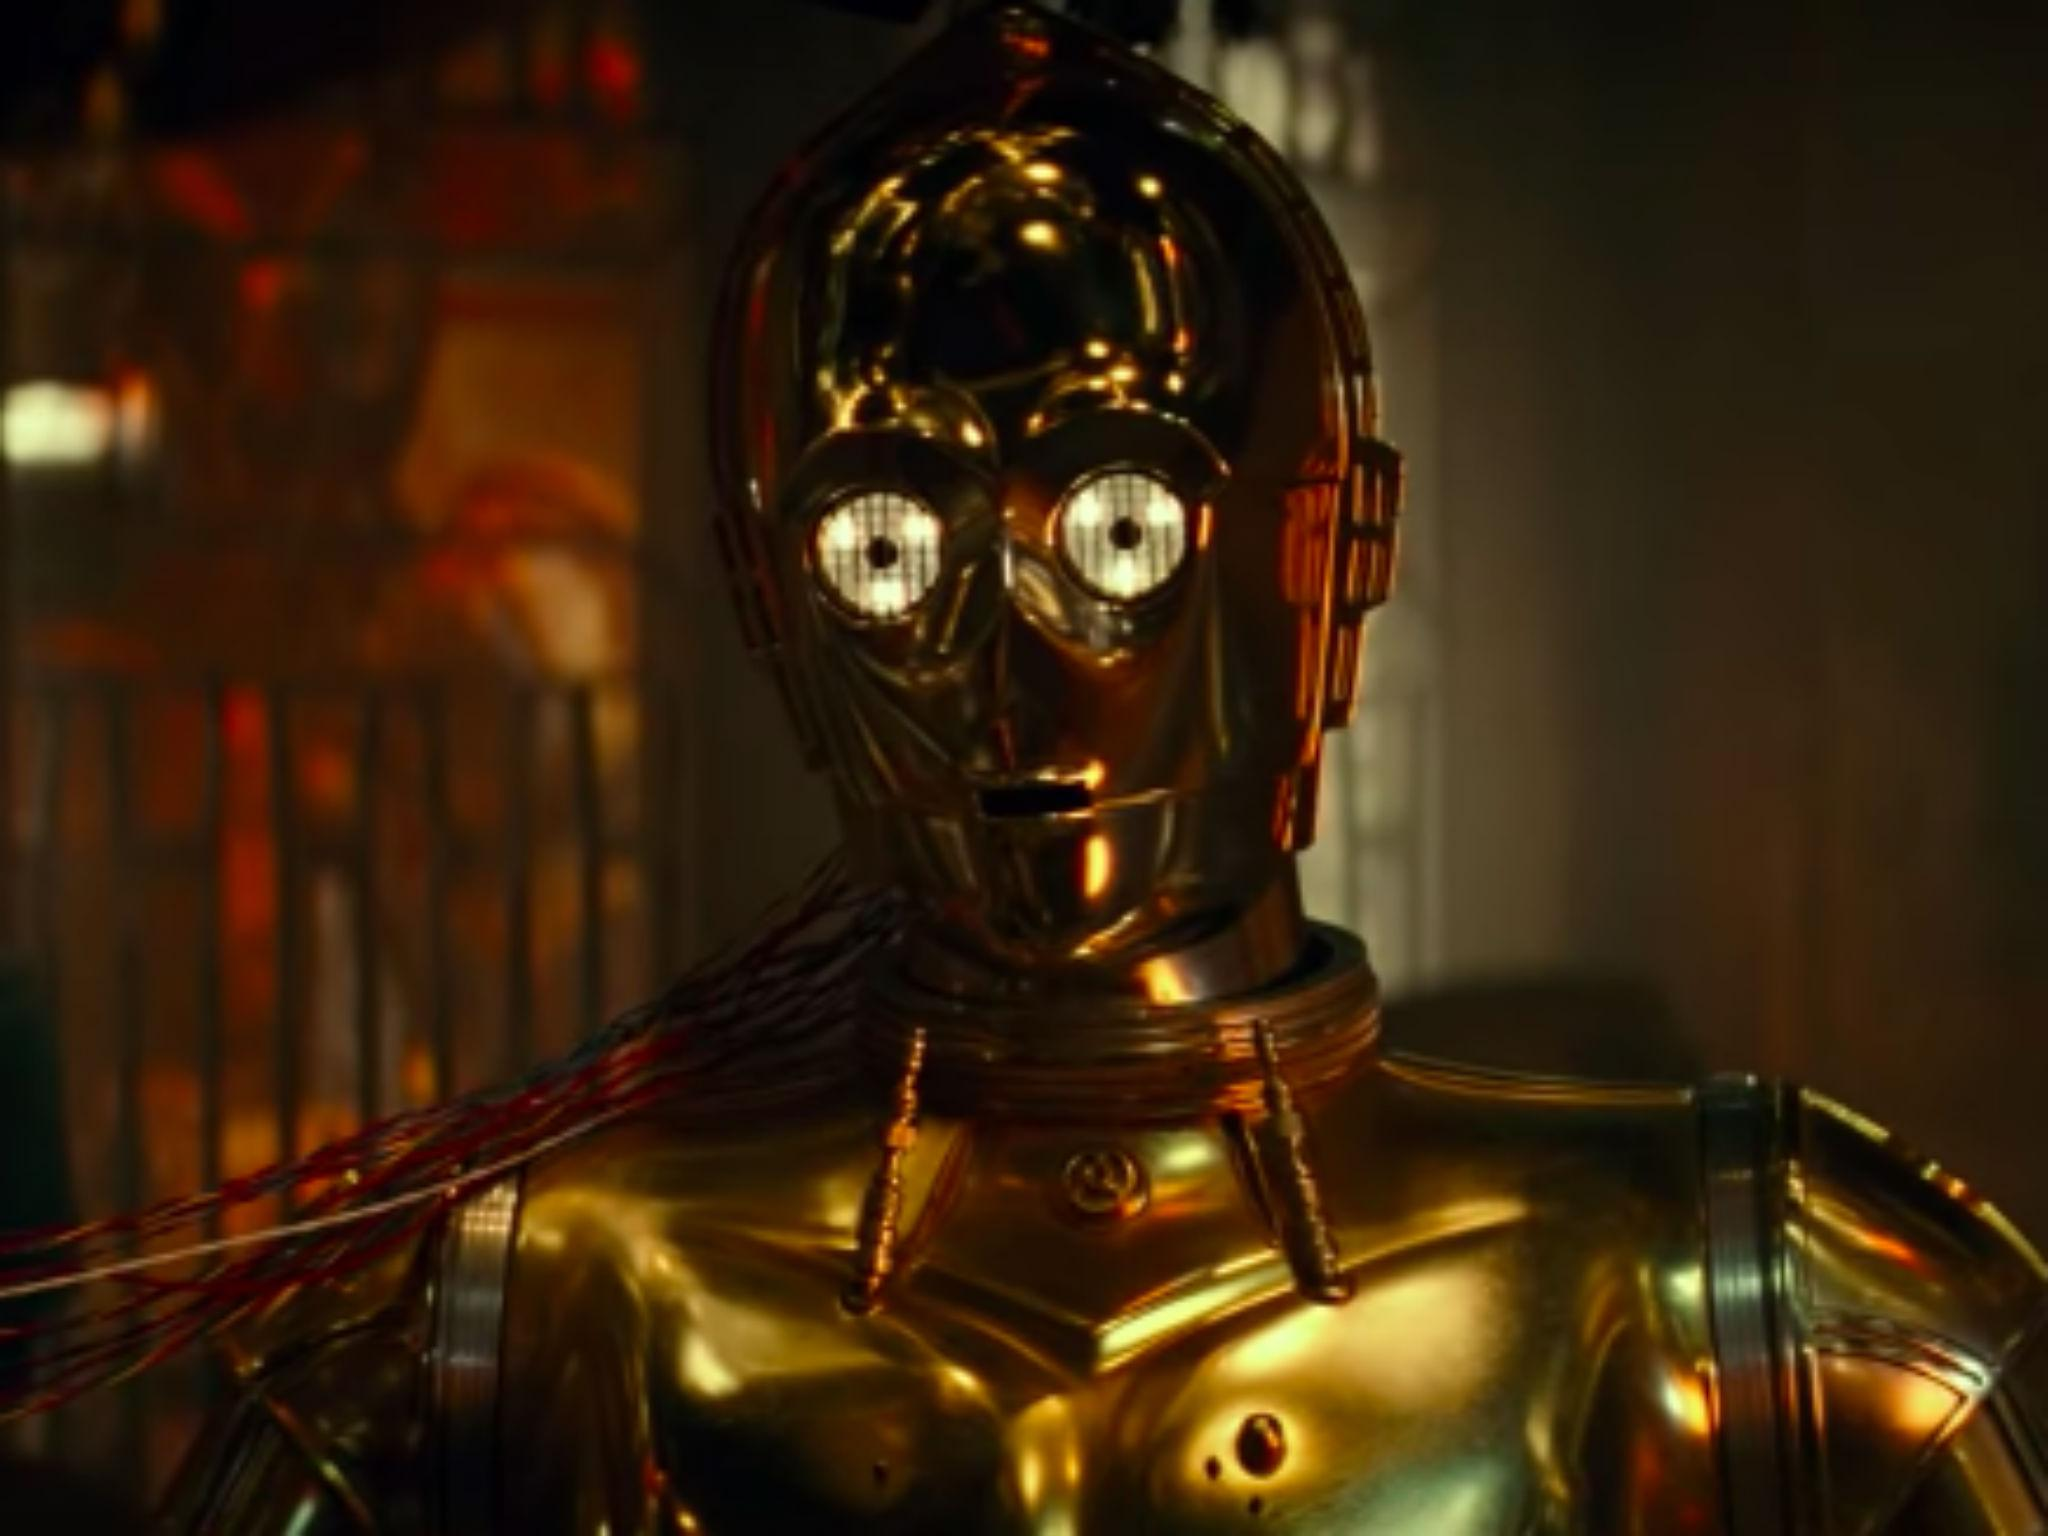 Star Wars fans predict death for C-3PO following new Episode 9 trailer: 'I definitely got some Dobby vibes'